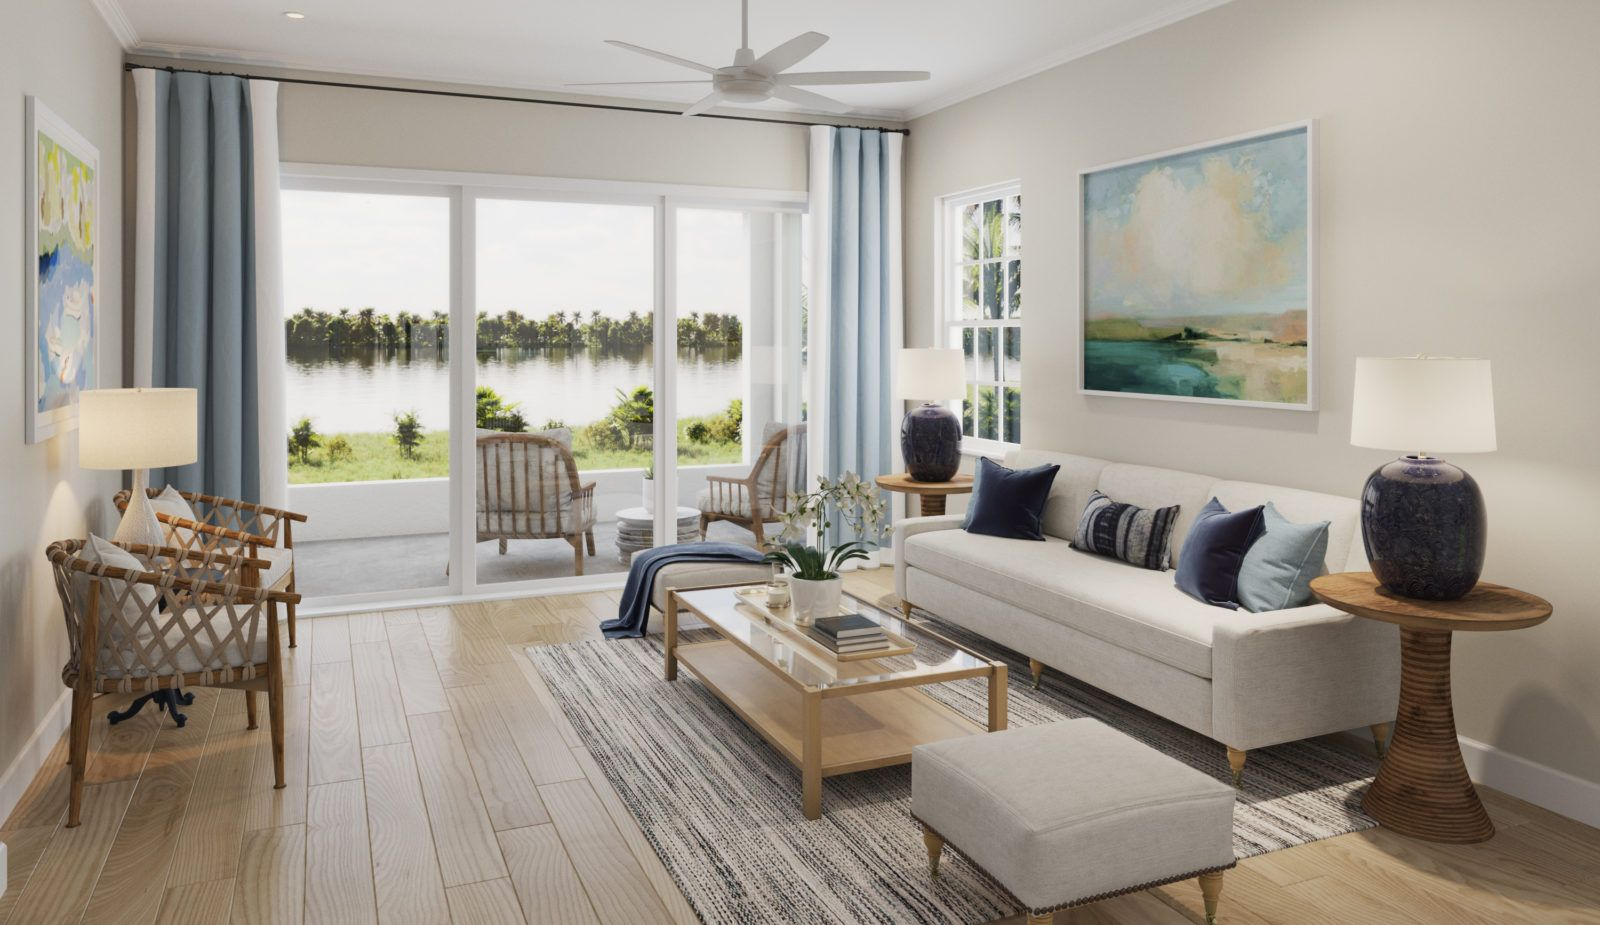 Living Area featured in the Venetian By Neal Communities in Punta Gorda, FL